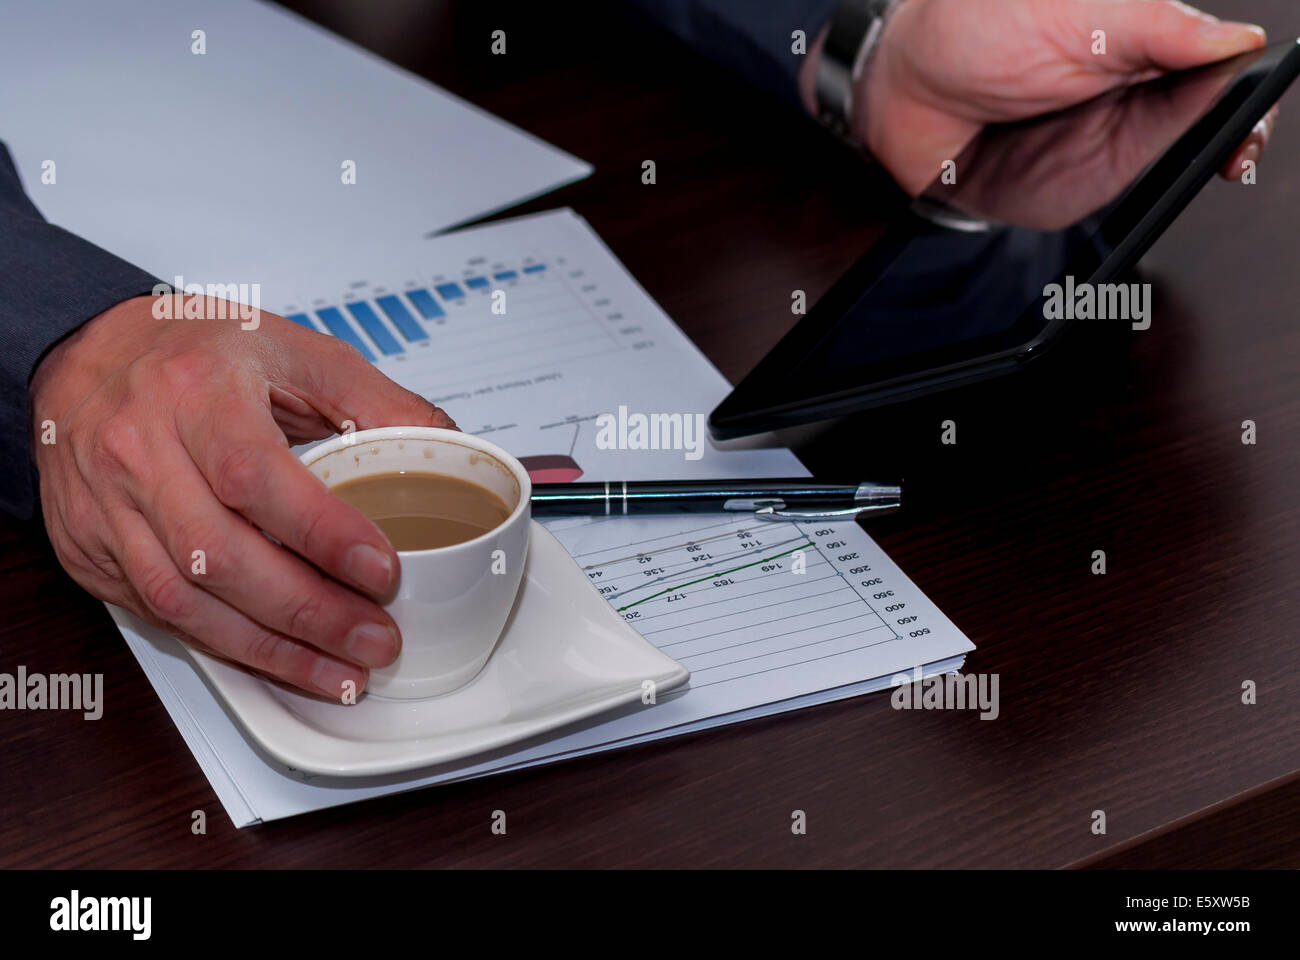 Man works in bussiness office with computer or laptop or notebook and papper graf and he drinks coffee Stock Photo